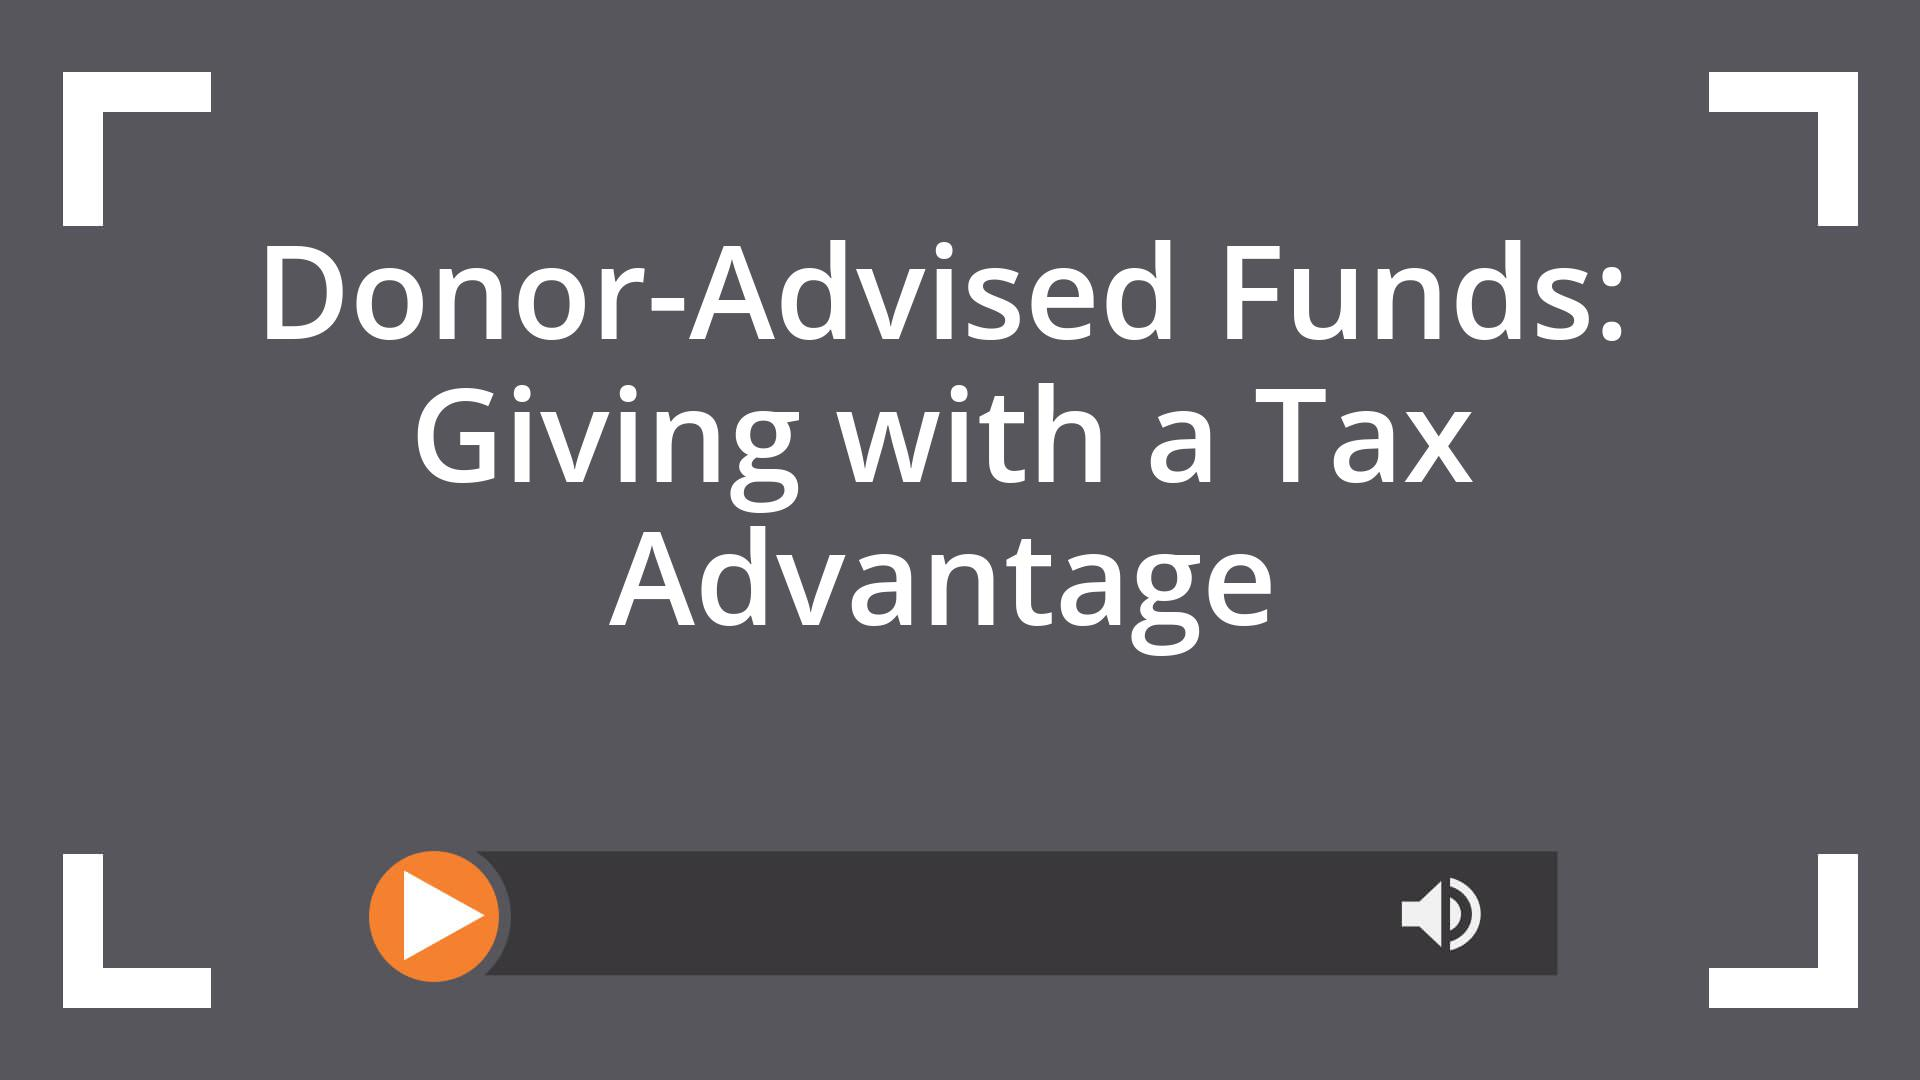 Donor-Advised Funds: Giving with a Tax Advantage